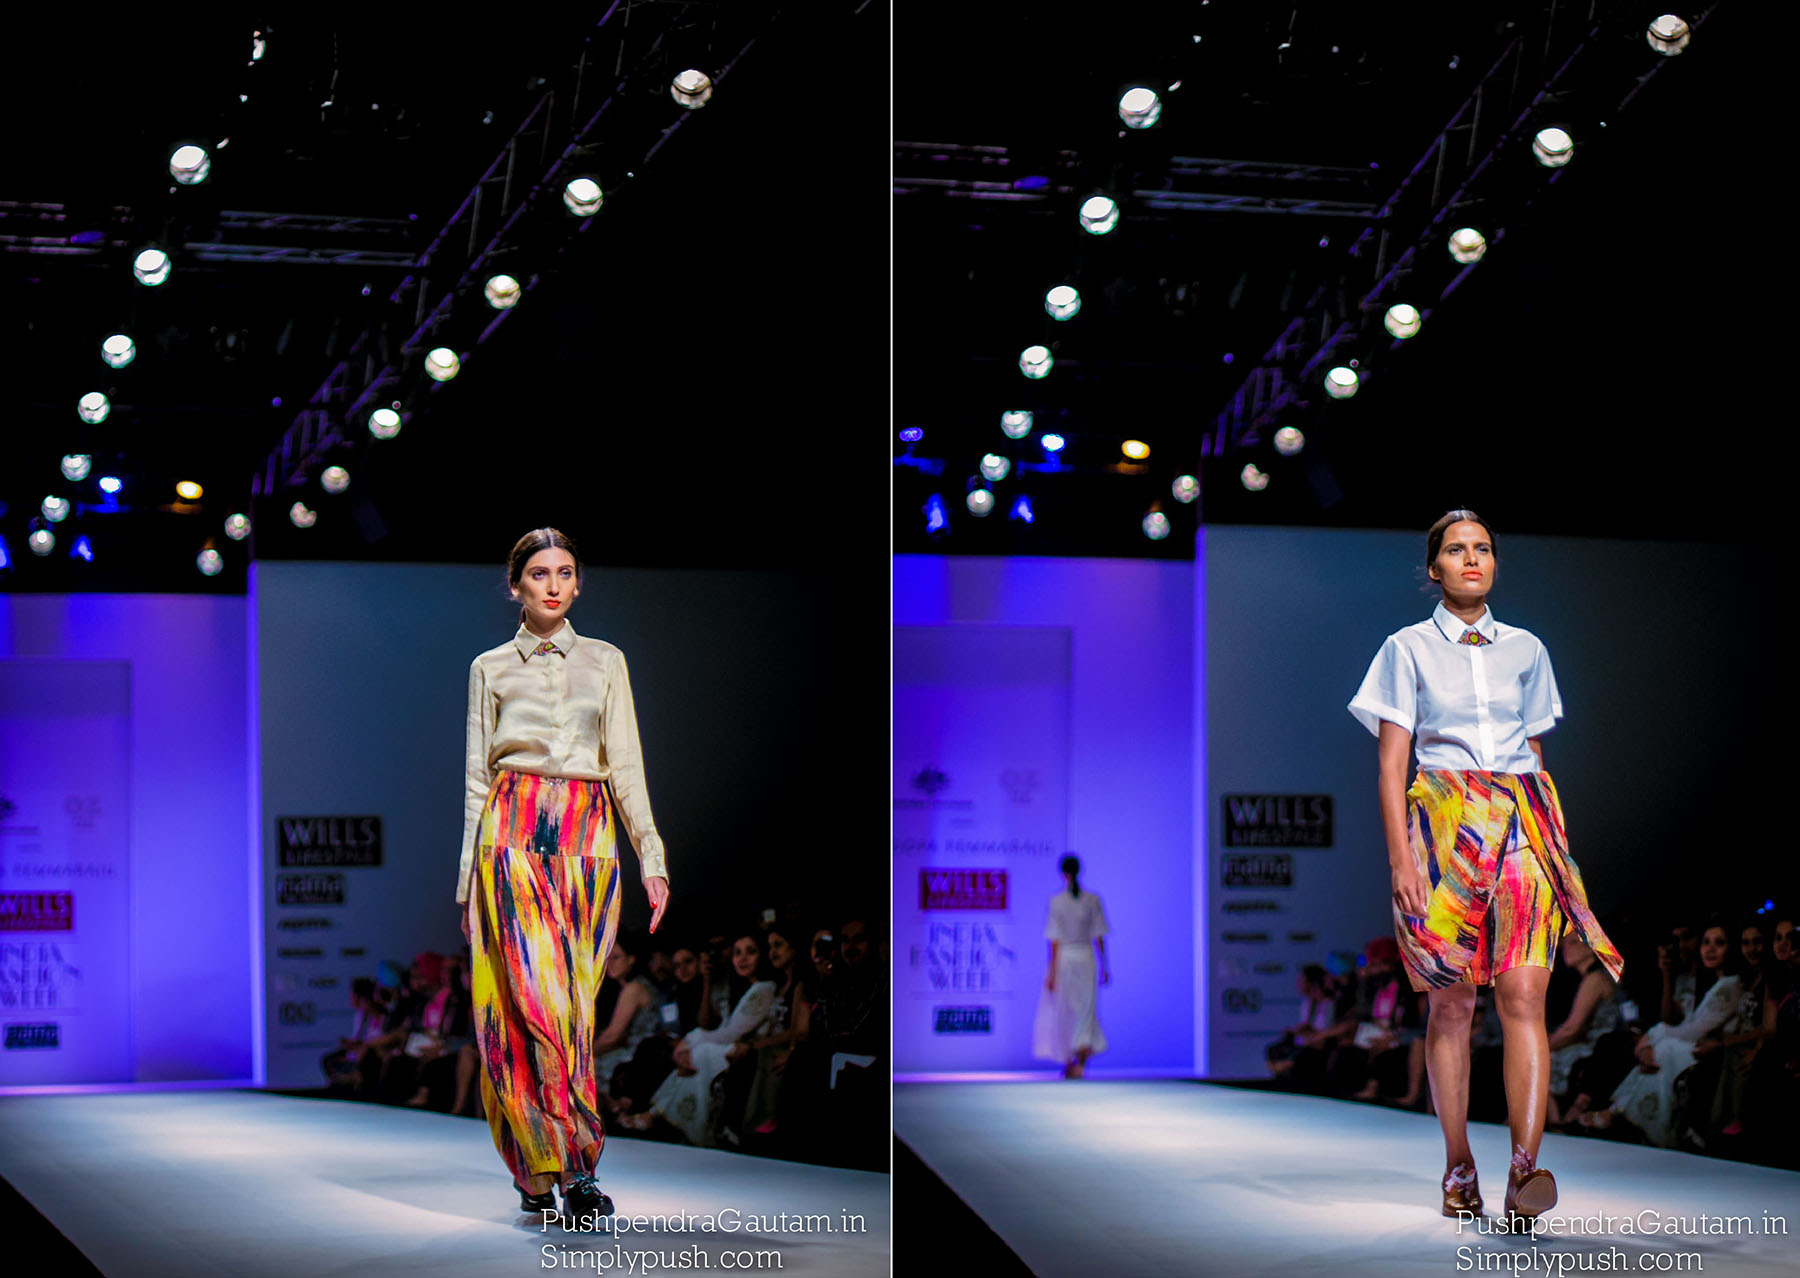 Roopa-Pemmaraju-show-at-wills-lifestyle-india-fashion-week-ss15-delhi-austaralian-designer-roopa-pemmaraju-show-at-wills-india-fashion-week-pushpendragautam-pics-event-photographer-india